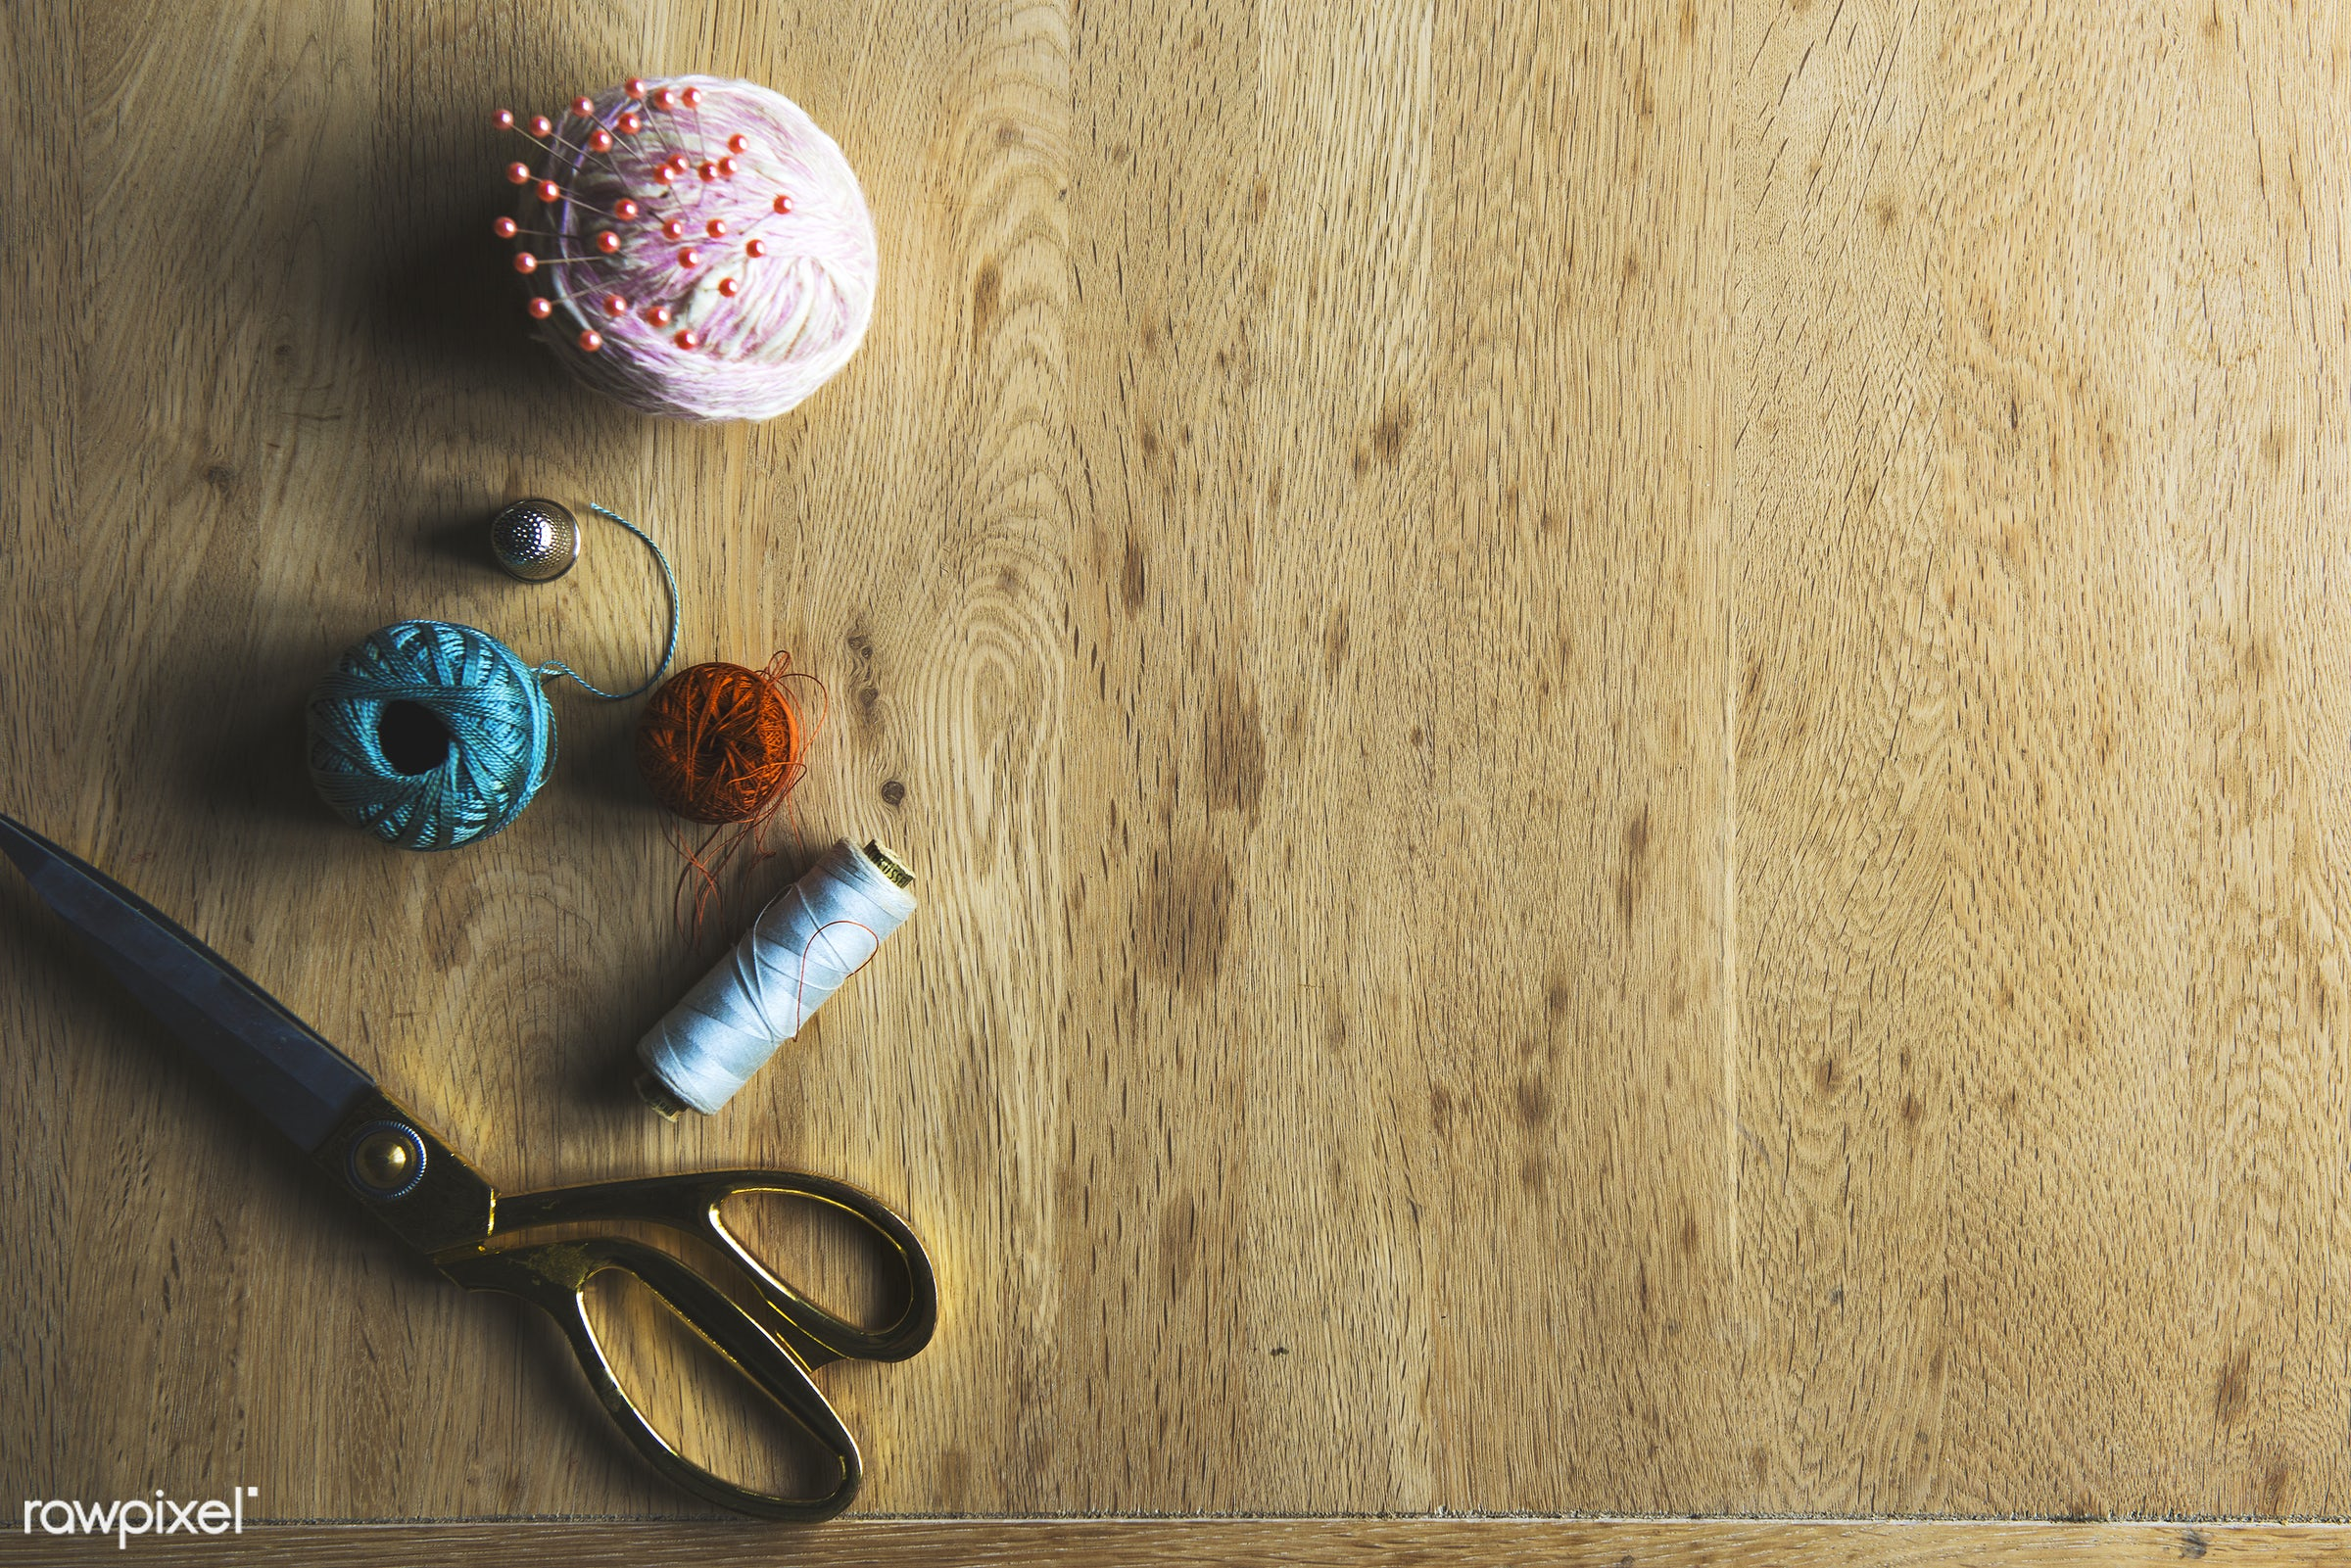 Sewing accessories on a wooden workspace - sew, craft, clothing, cotton yarn, roll, tools, accessory, cloth, thread, tailor...